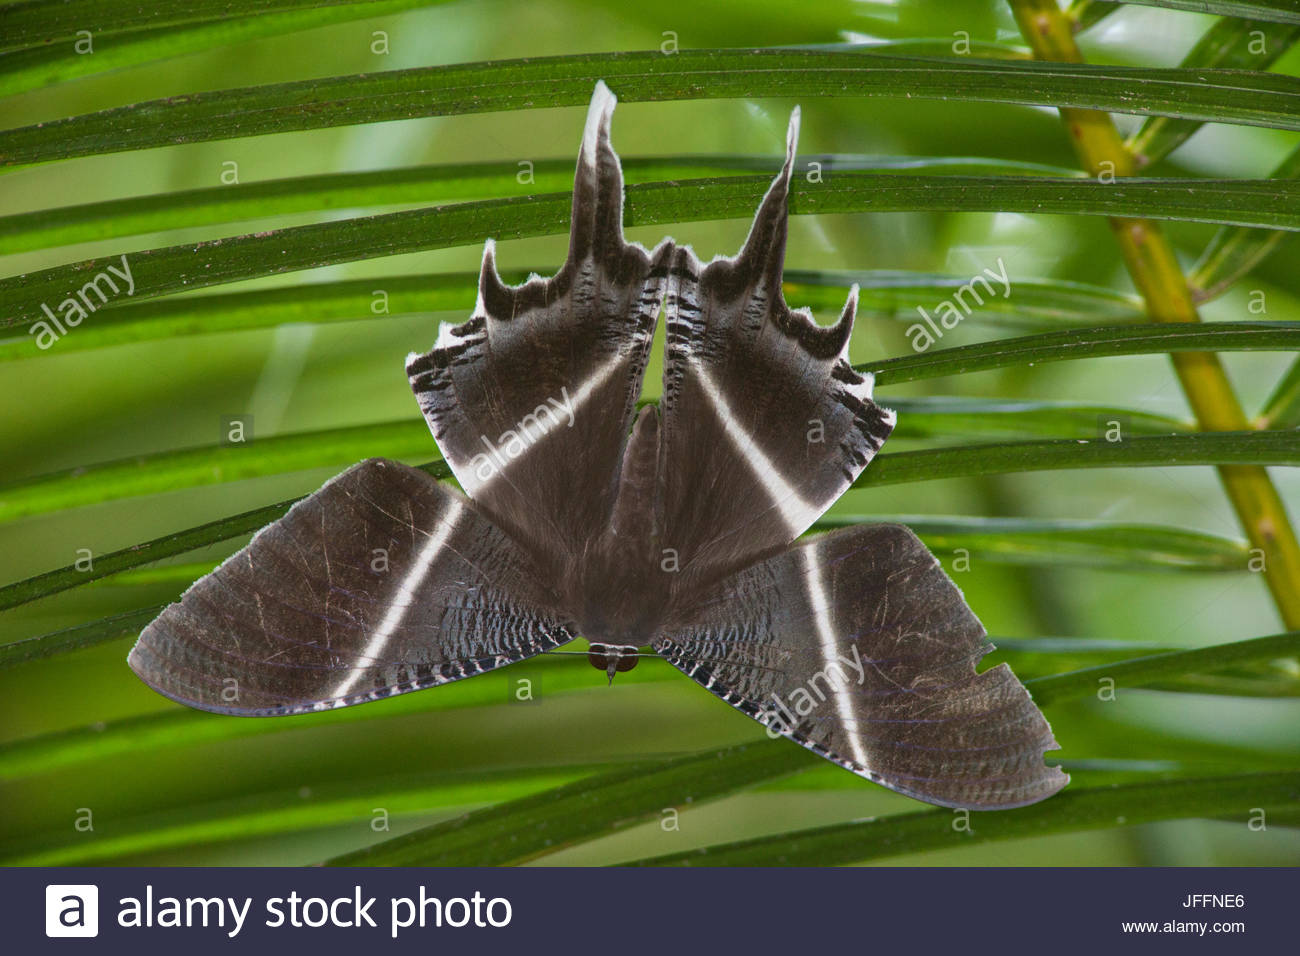 Portrait of a tropical swallowtail moth, Lyssa zampa, on a palm frond. - Stock Image